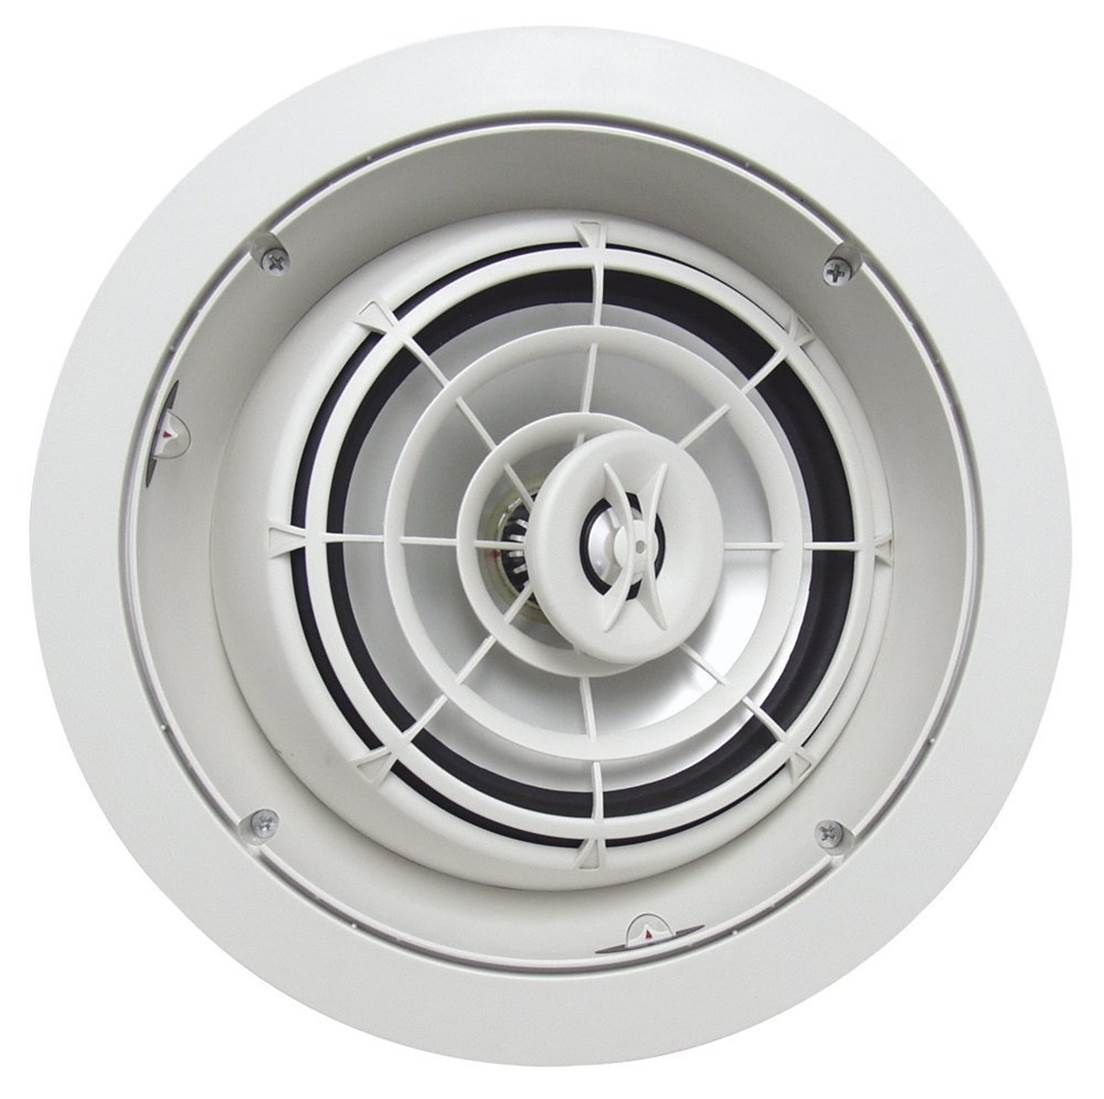 SpeakerCraft AIM8 Three High Fidelity Pivoting Bluetooth Ceiling Speakers